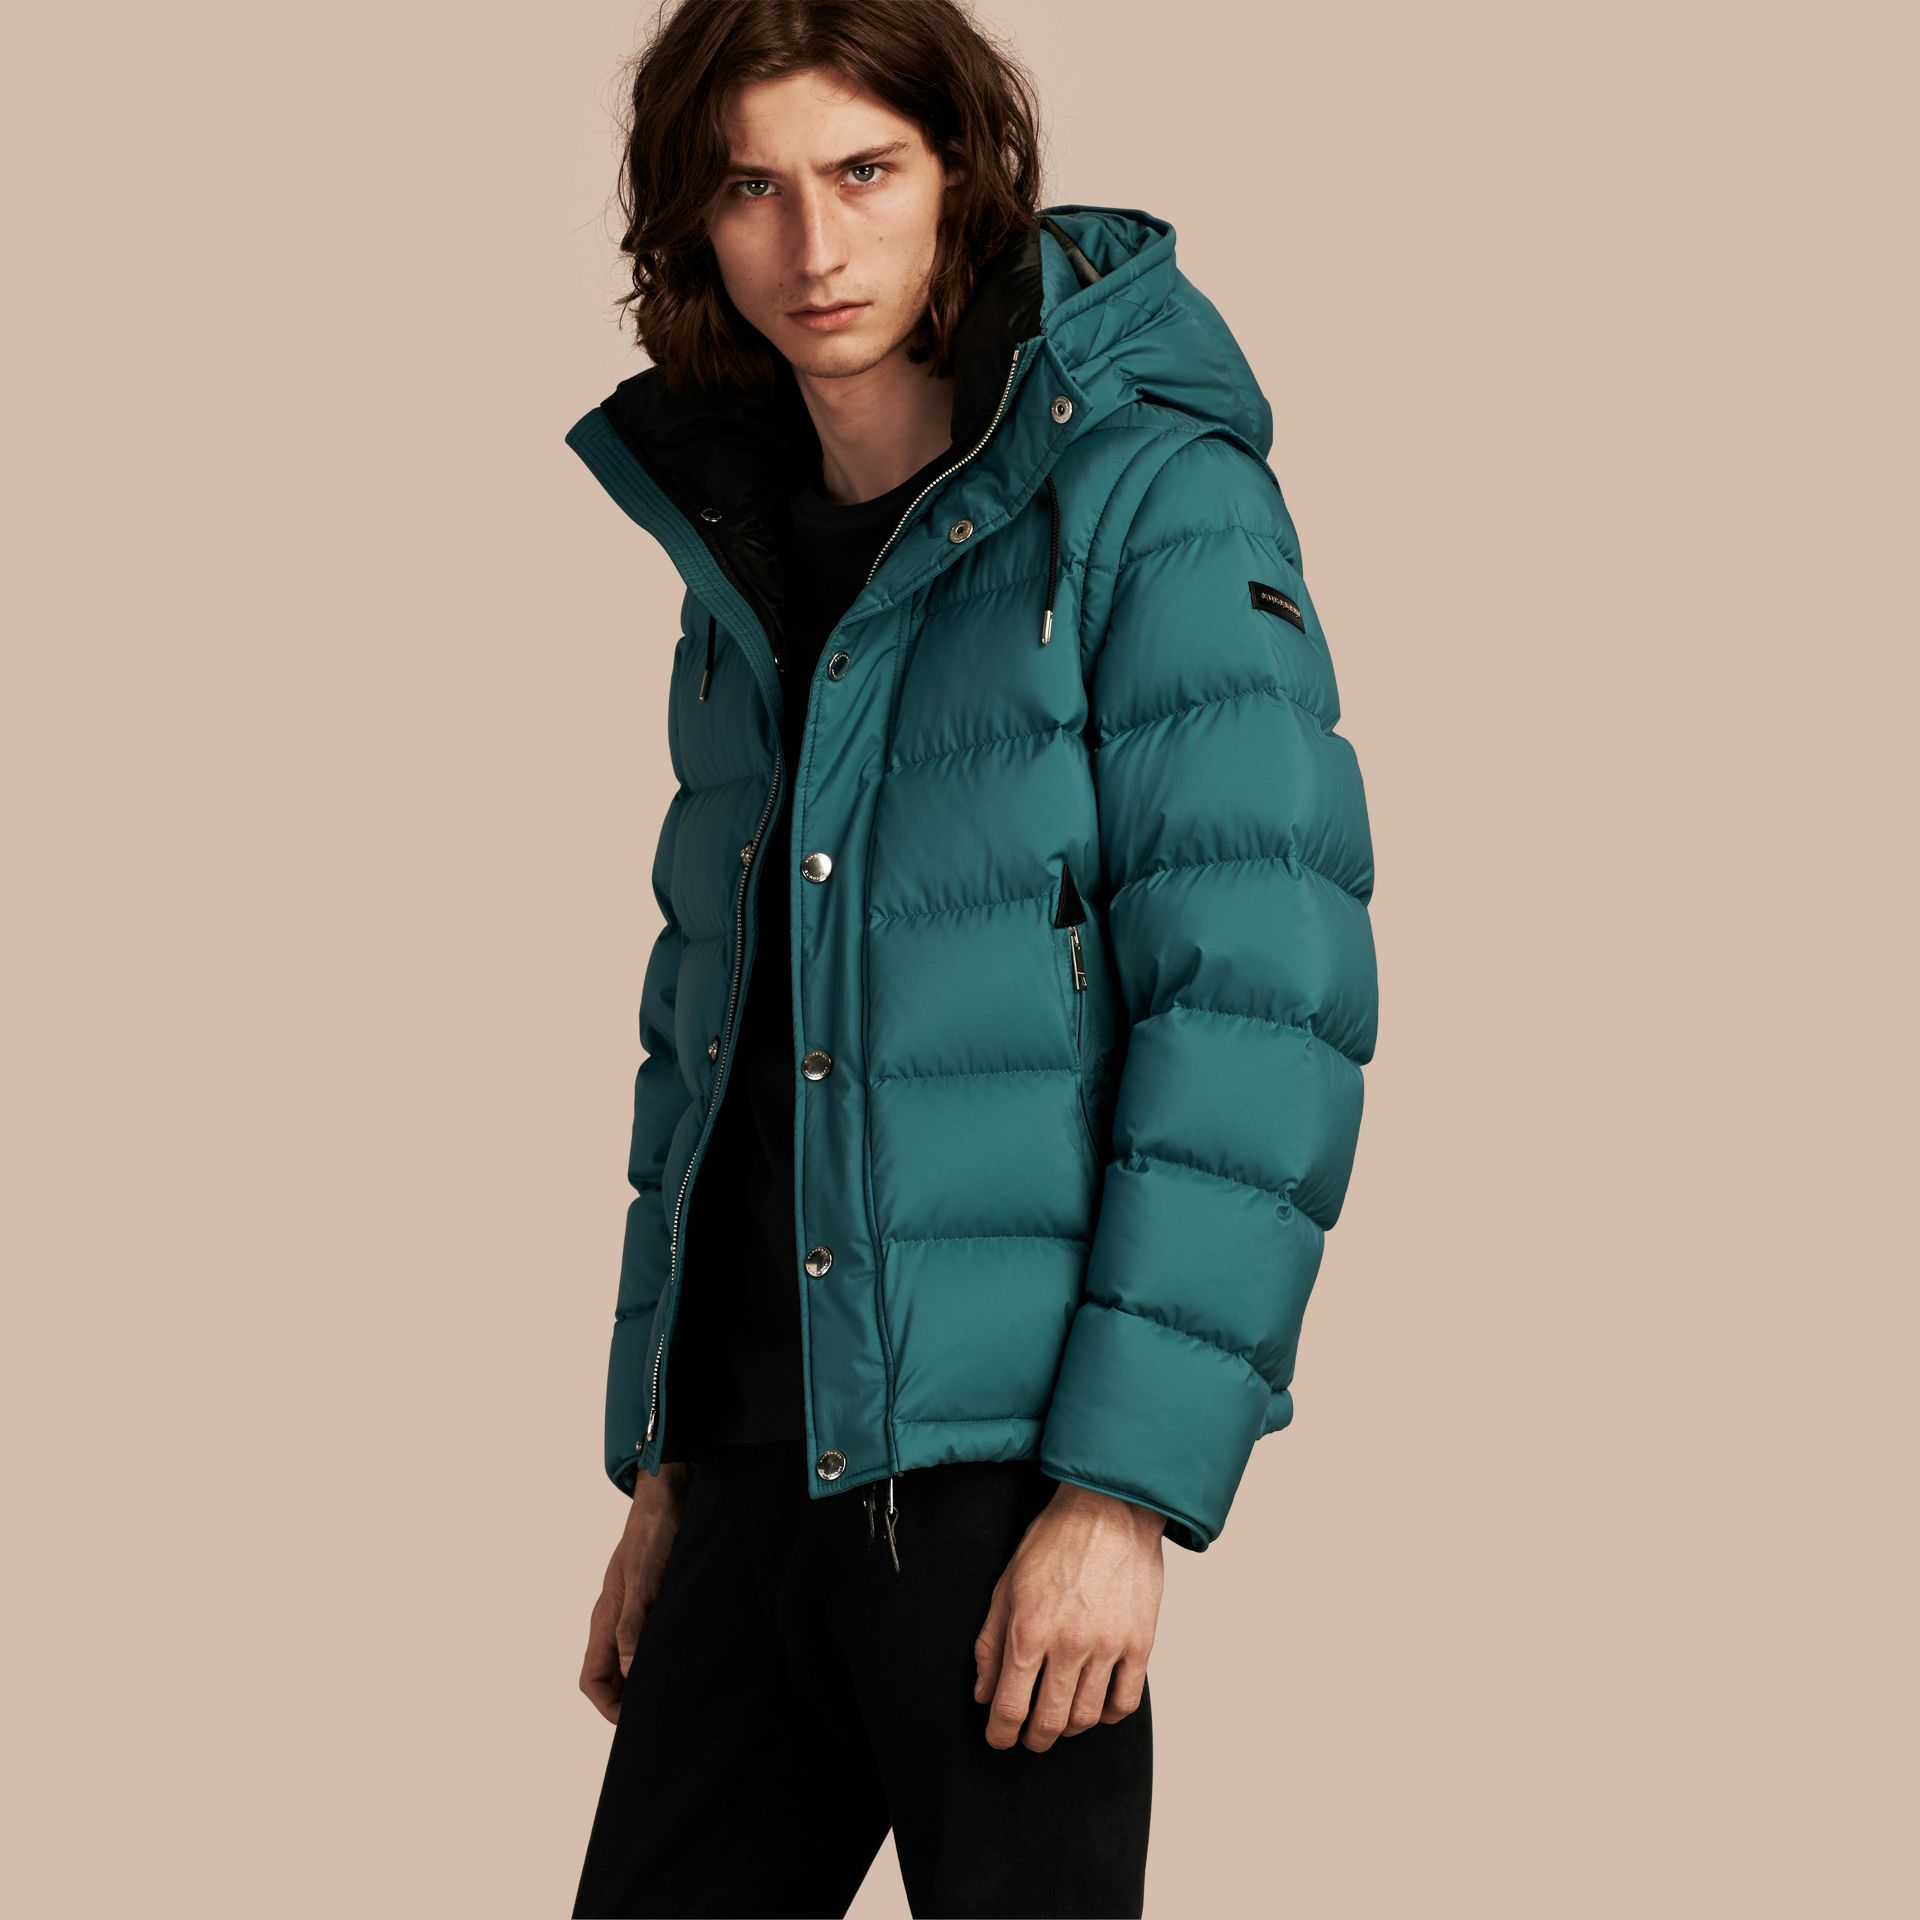 Down-filled Hooded Jacket with Detachable Sleeves in Dusty Teal - gallery image 1